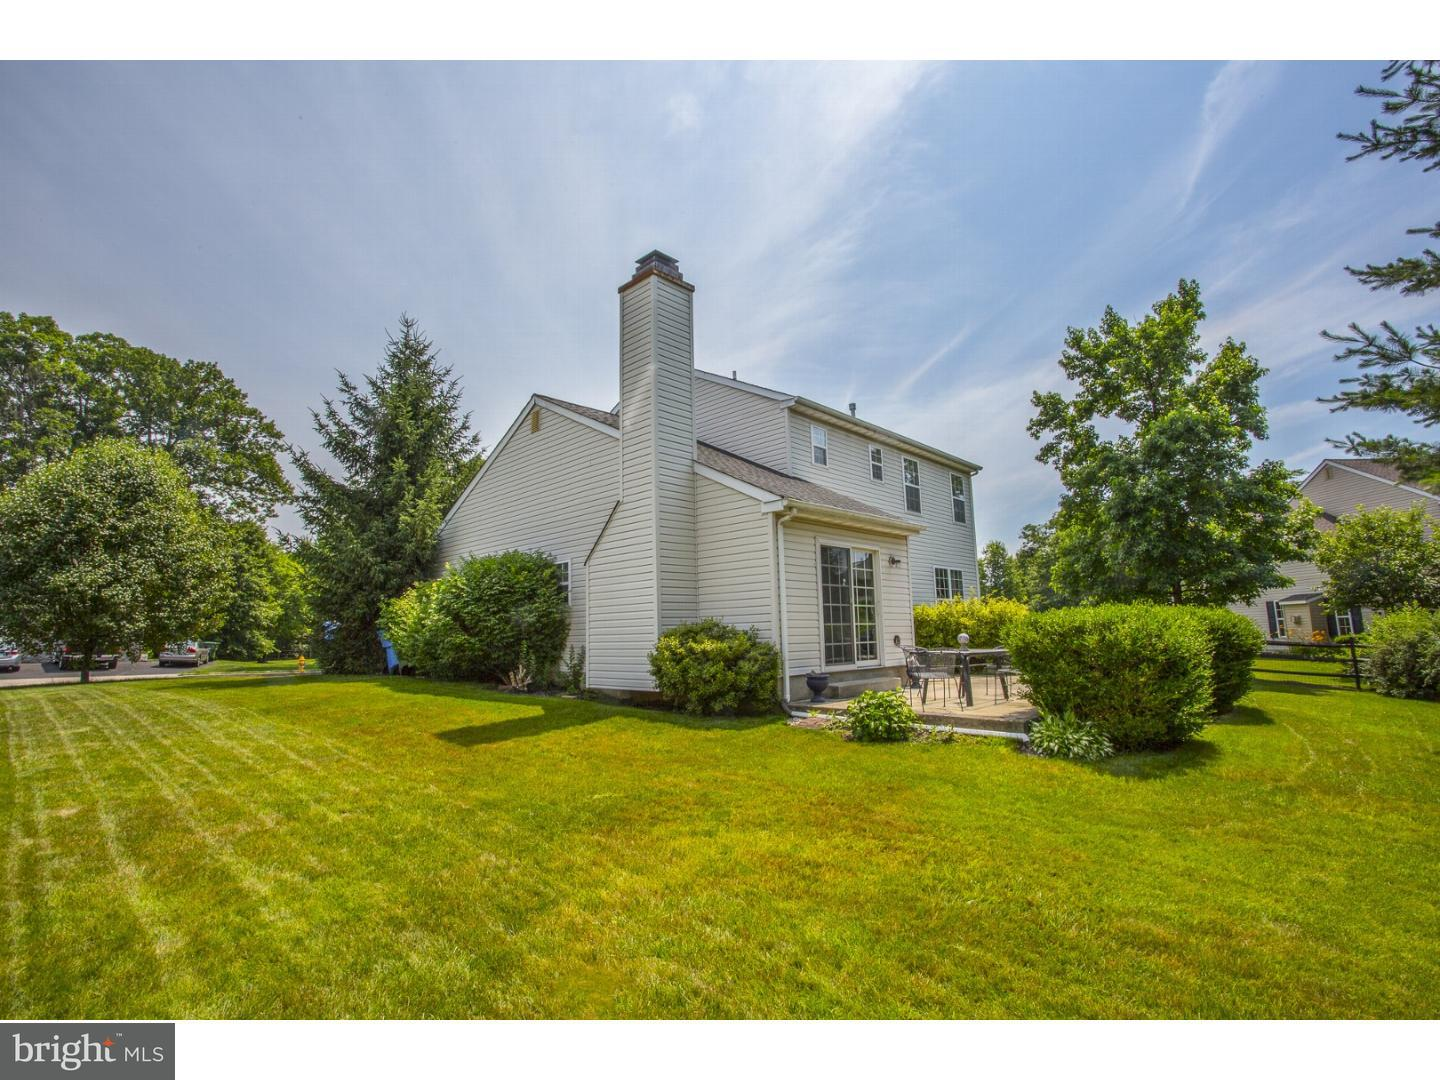 65 PATRIOT DR, CHALFONT - Listed at $374,900, CHALFONT